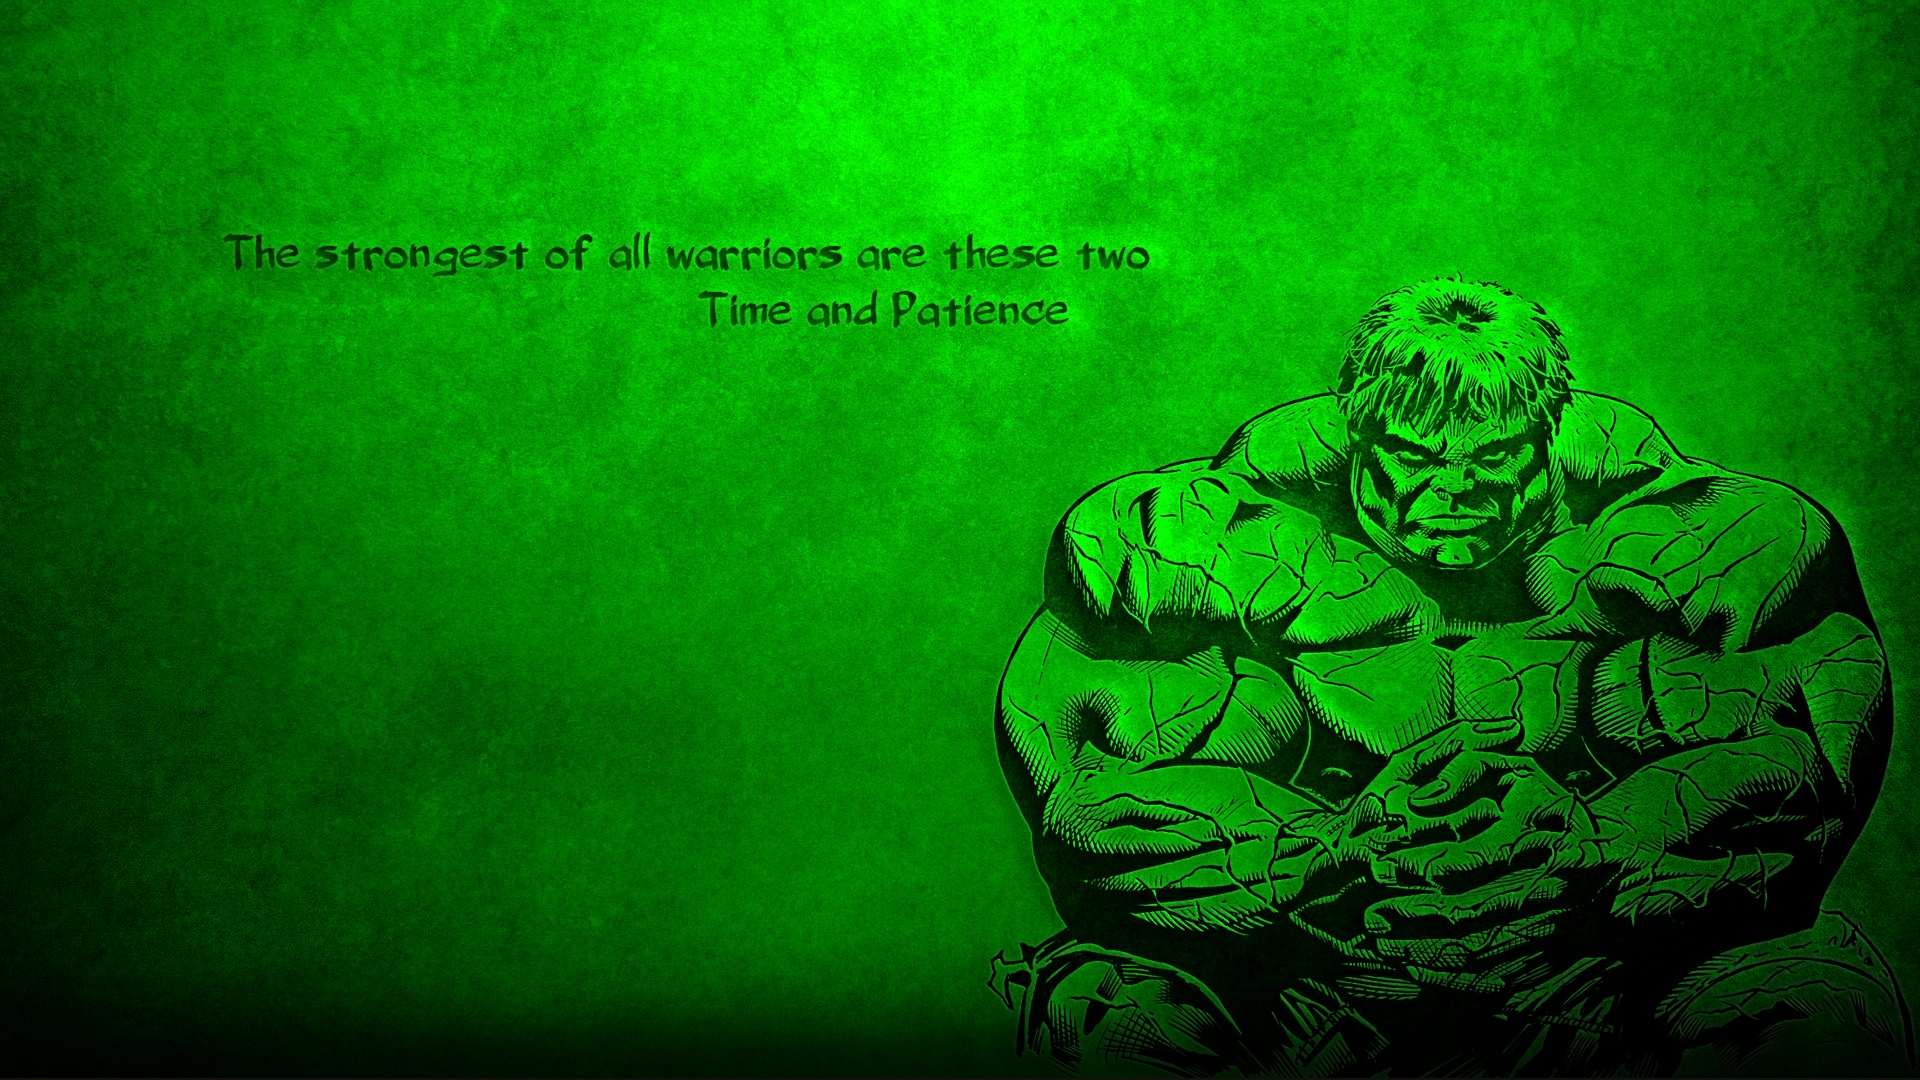 Hulk Green Quote Wallpapers HD Desktop and Mobile Backgrounds 1920x1080